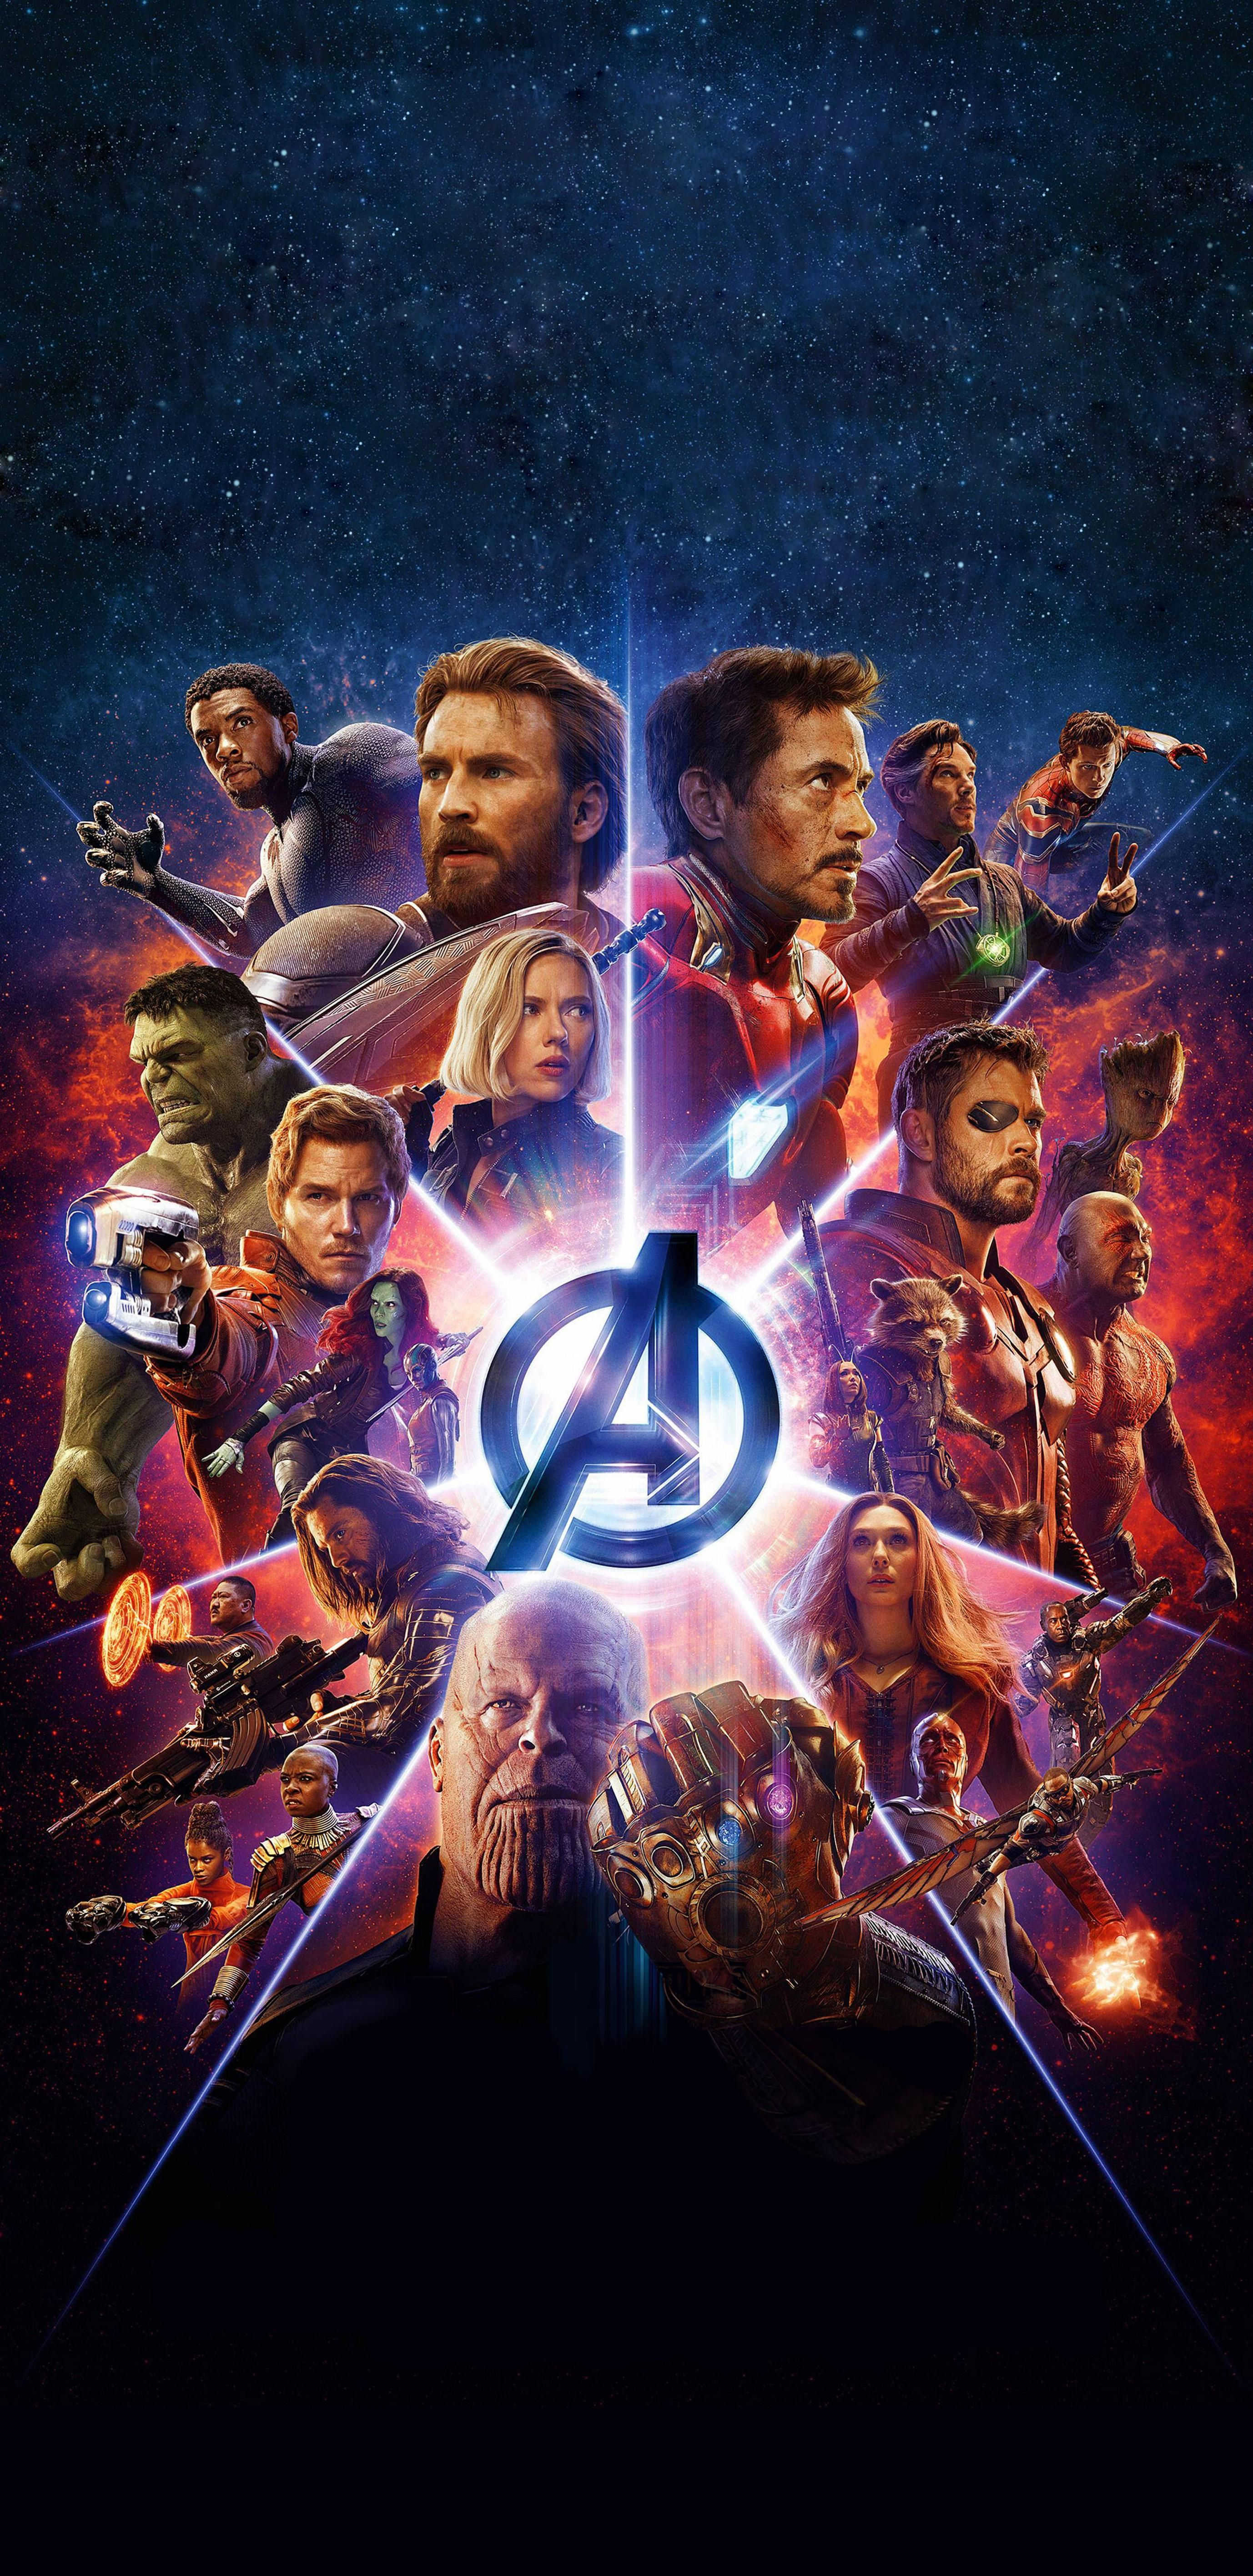 My favorite Avengers Infinity War Poster Optimized for